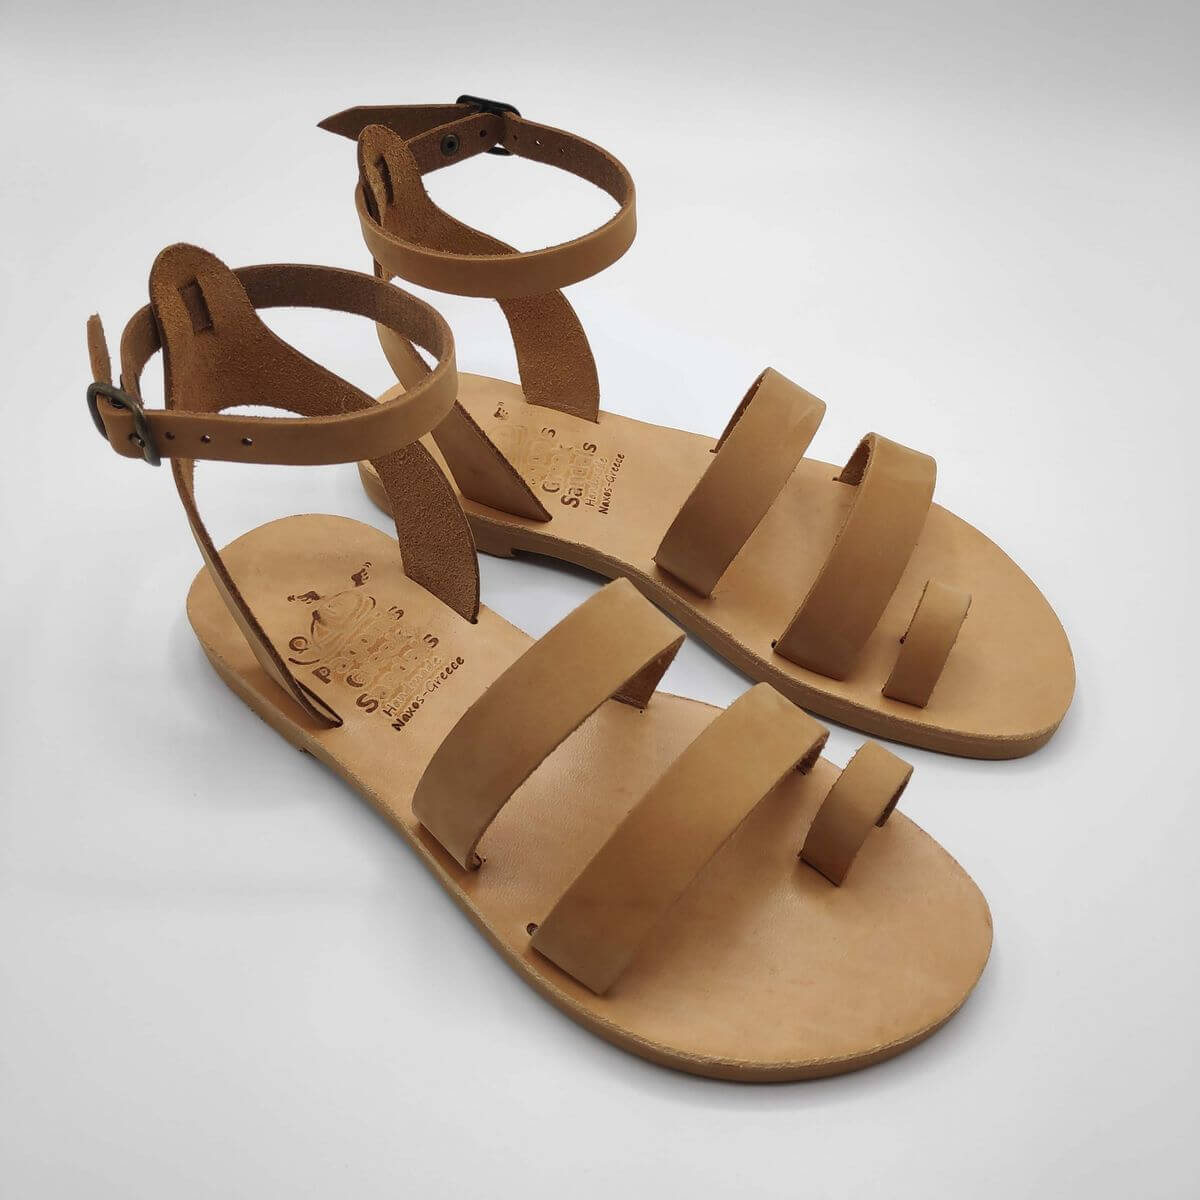 Nude nubuck leather dressy sandals with two straps, toe ring and high ankle strap, side view